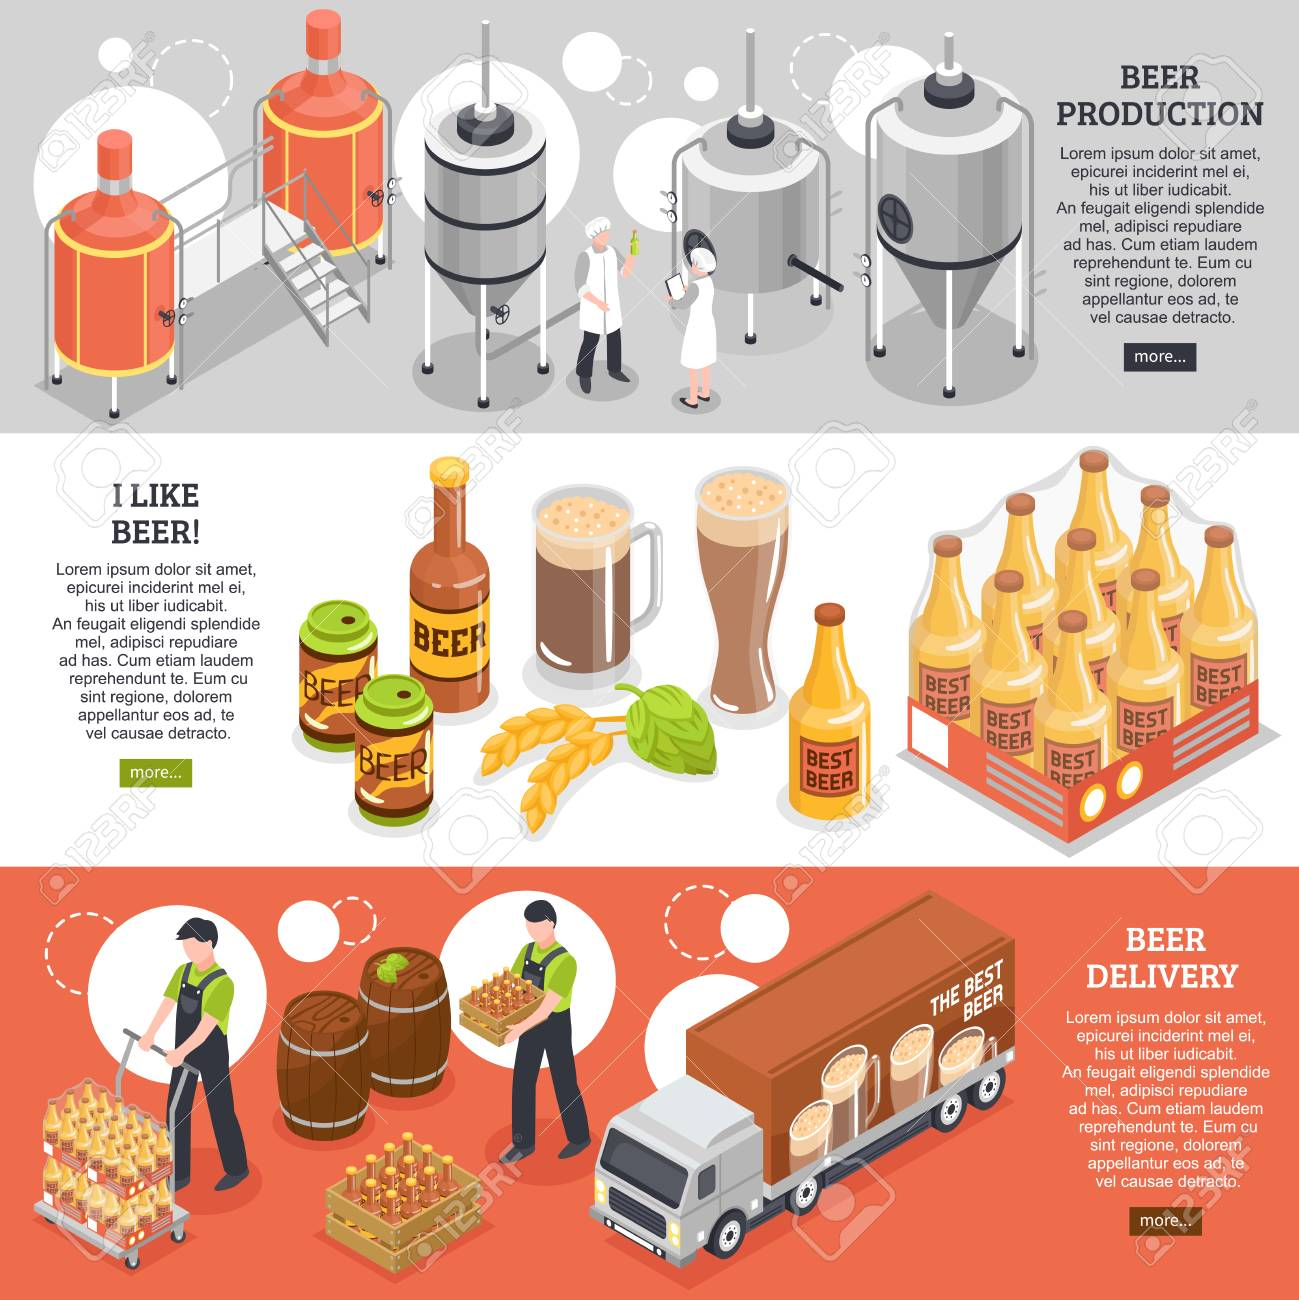 Beer production distribution consumption 3 isometric horizontal